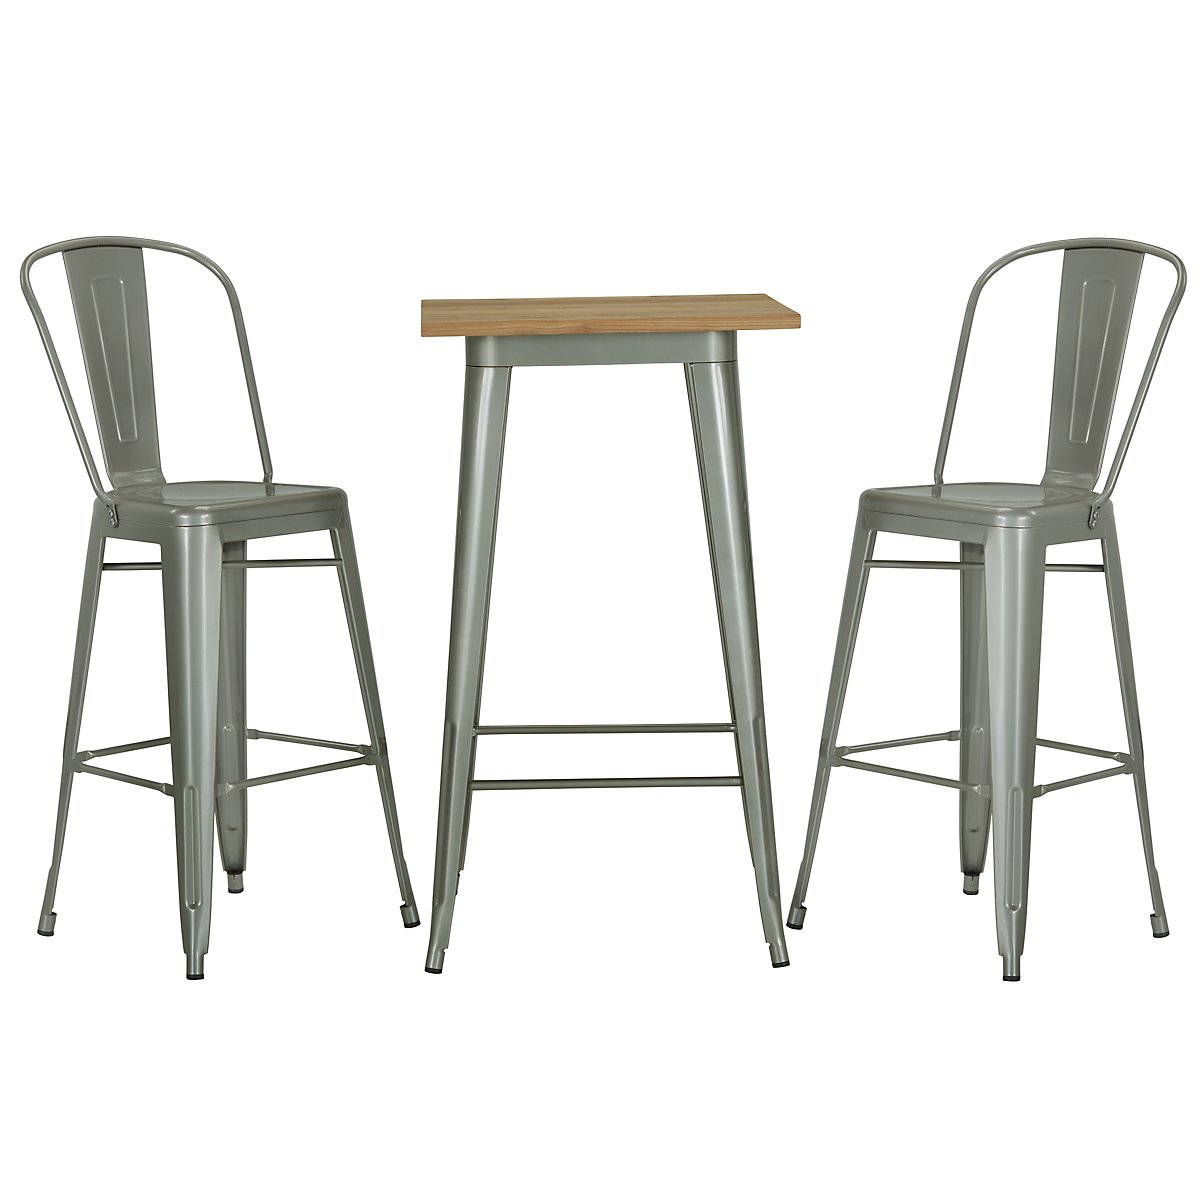 Huntley Light Tone Metal Pub Table & 2 Metal Barstools